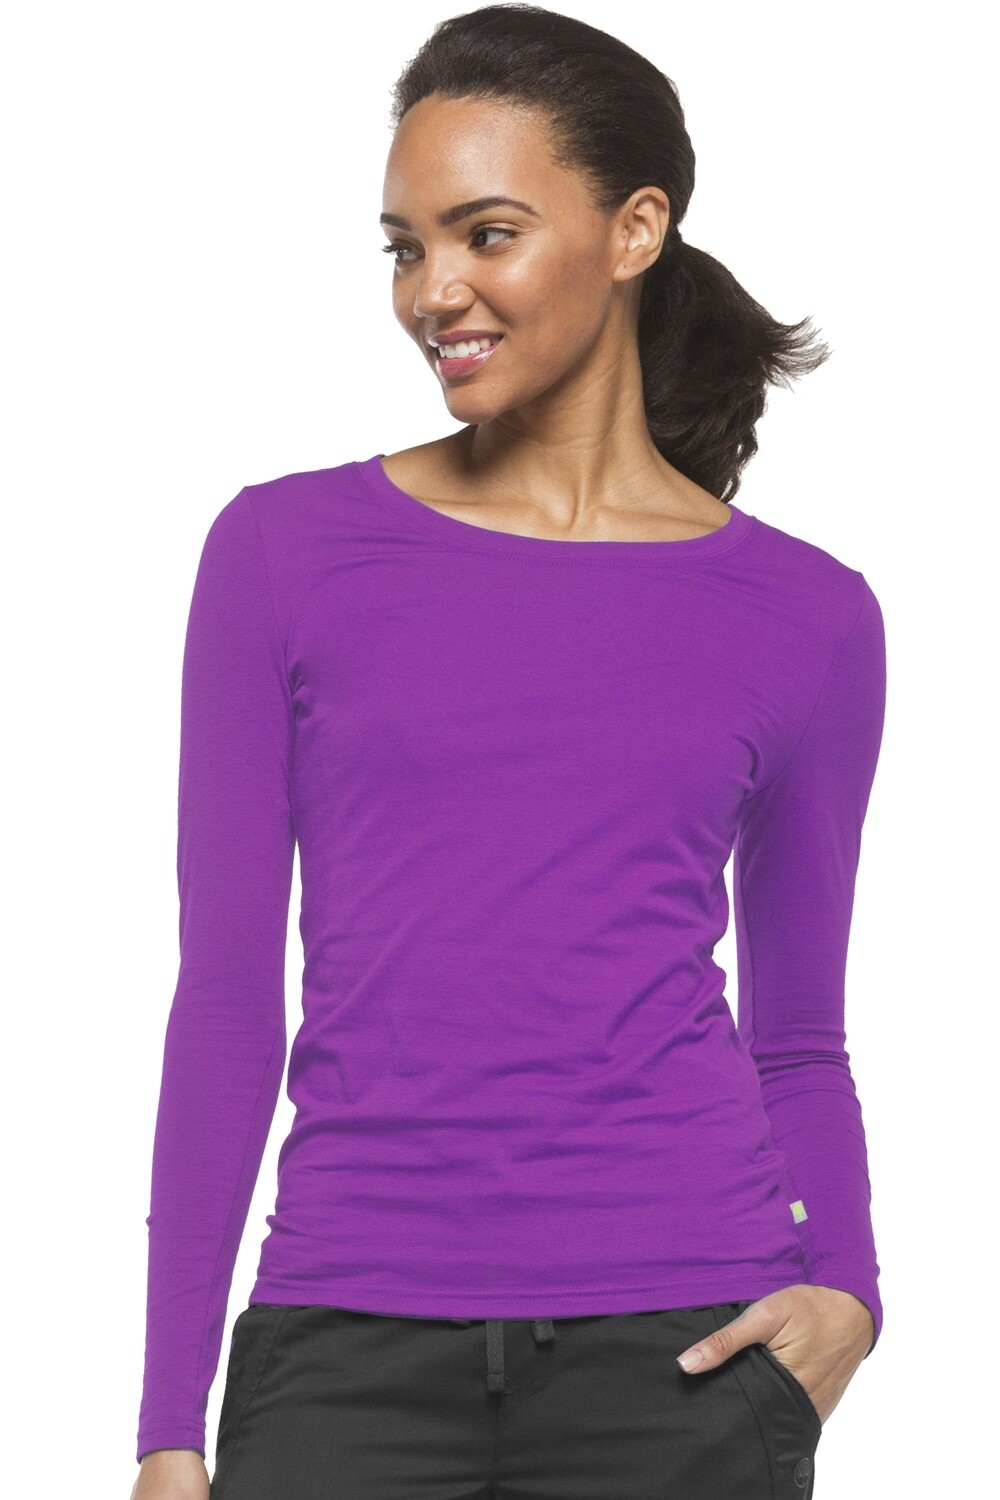 5047 MELISSA TEE XL BERRY KISS